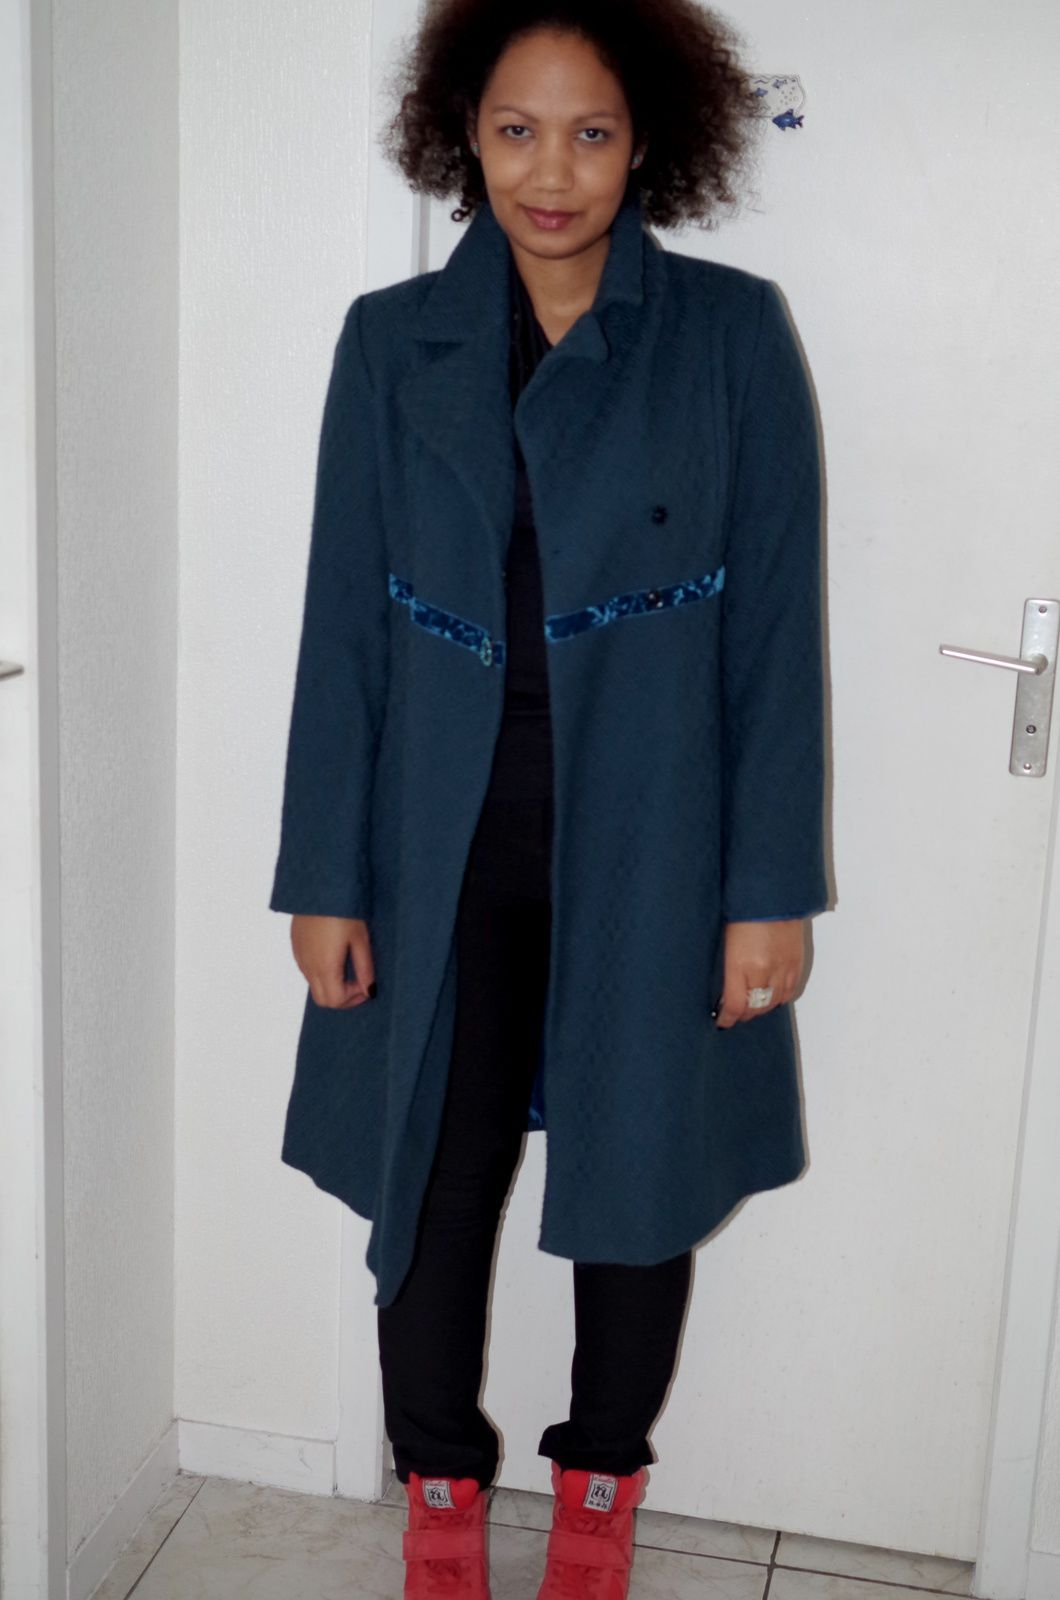 Peacock coat is back